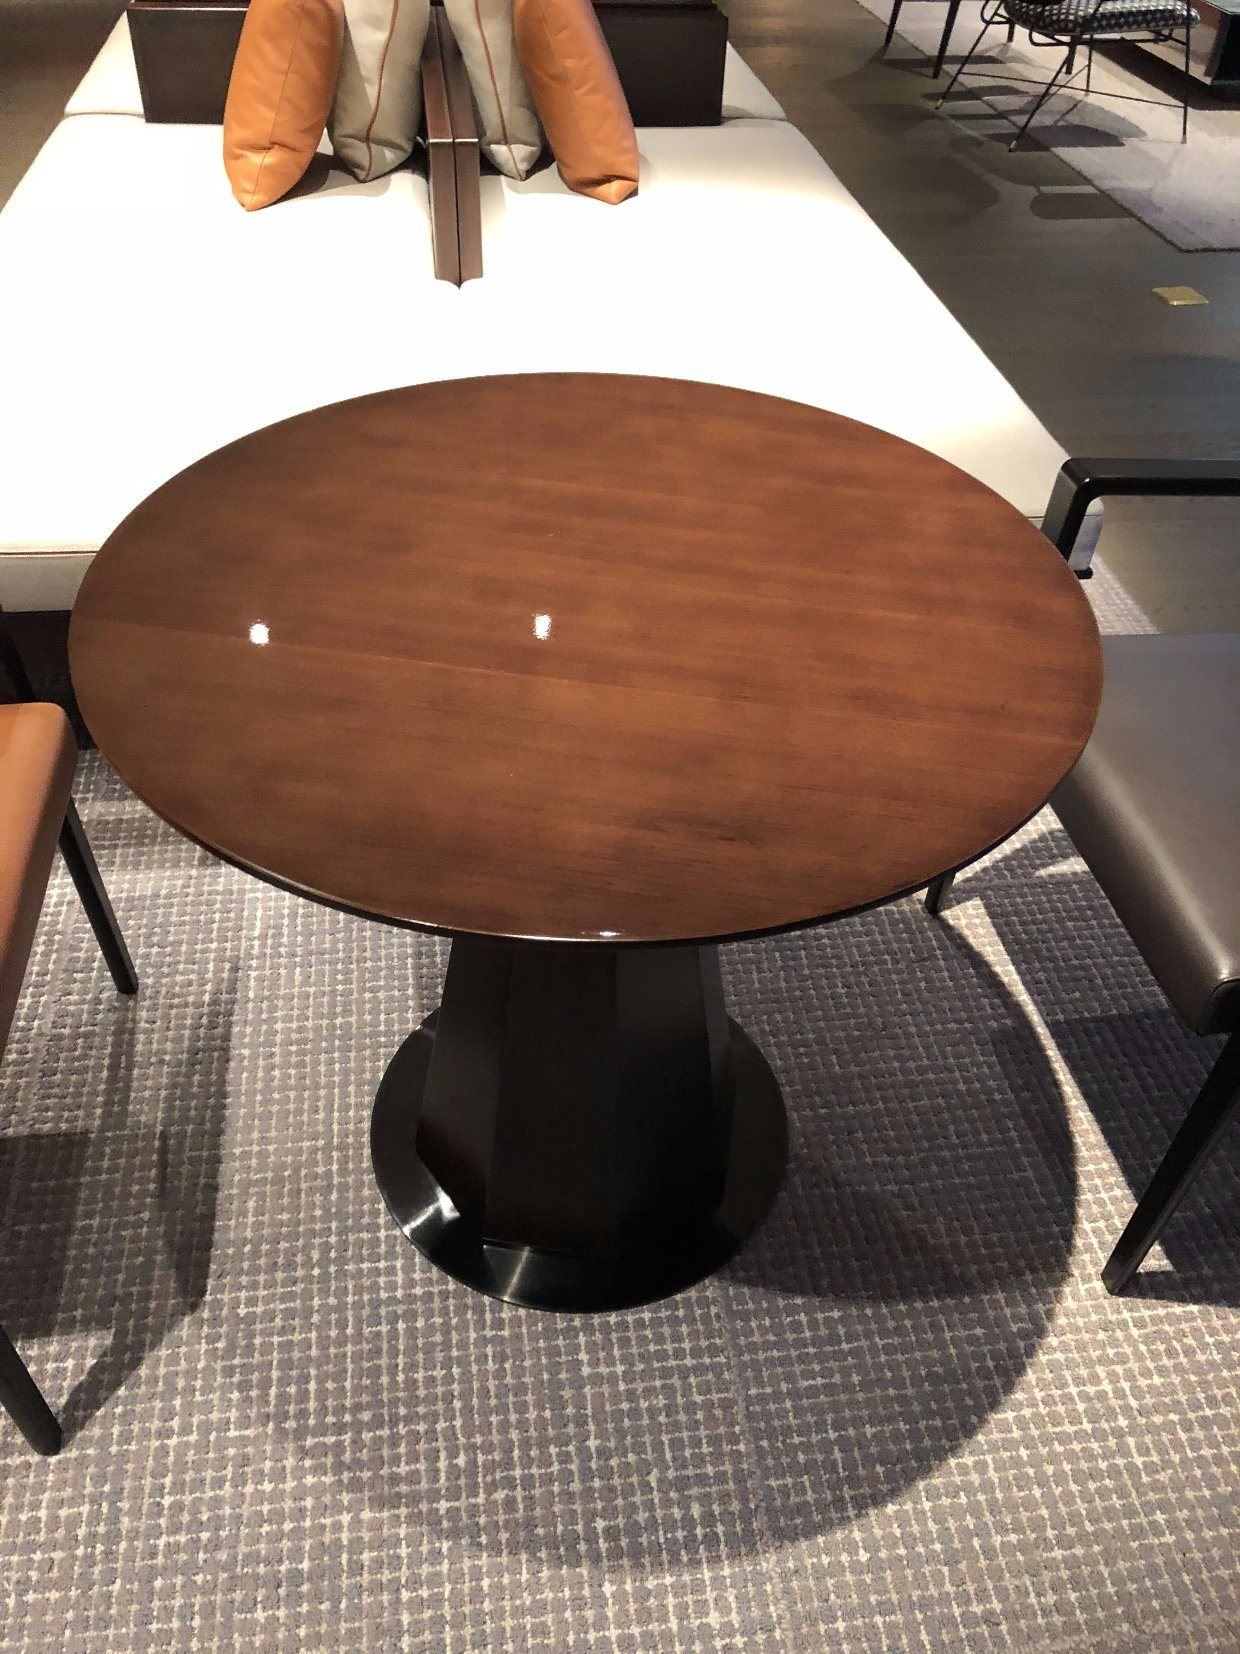 Restaurant Furniture Sets/Hotel Furniture/Dining Furniture/Chair and Table (GLDT-0109821)